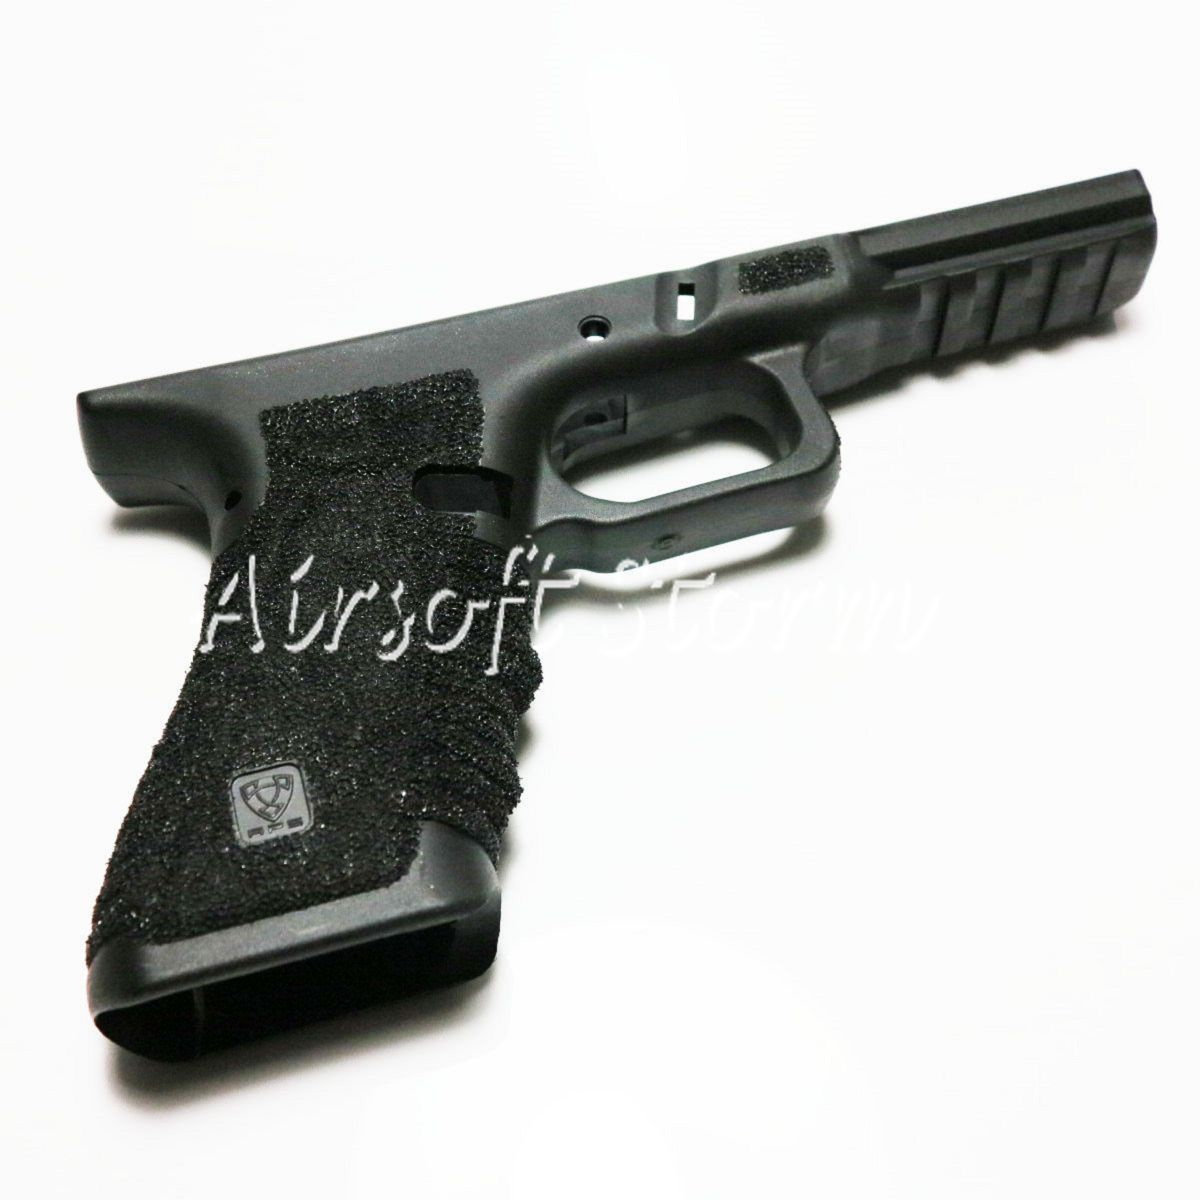 AEG Gear APS AC008S ACP601 GBB Polymer Fiber Body Lower Frame Stipple Black